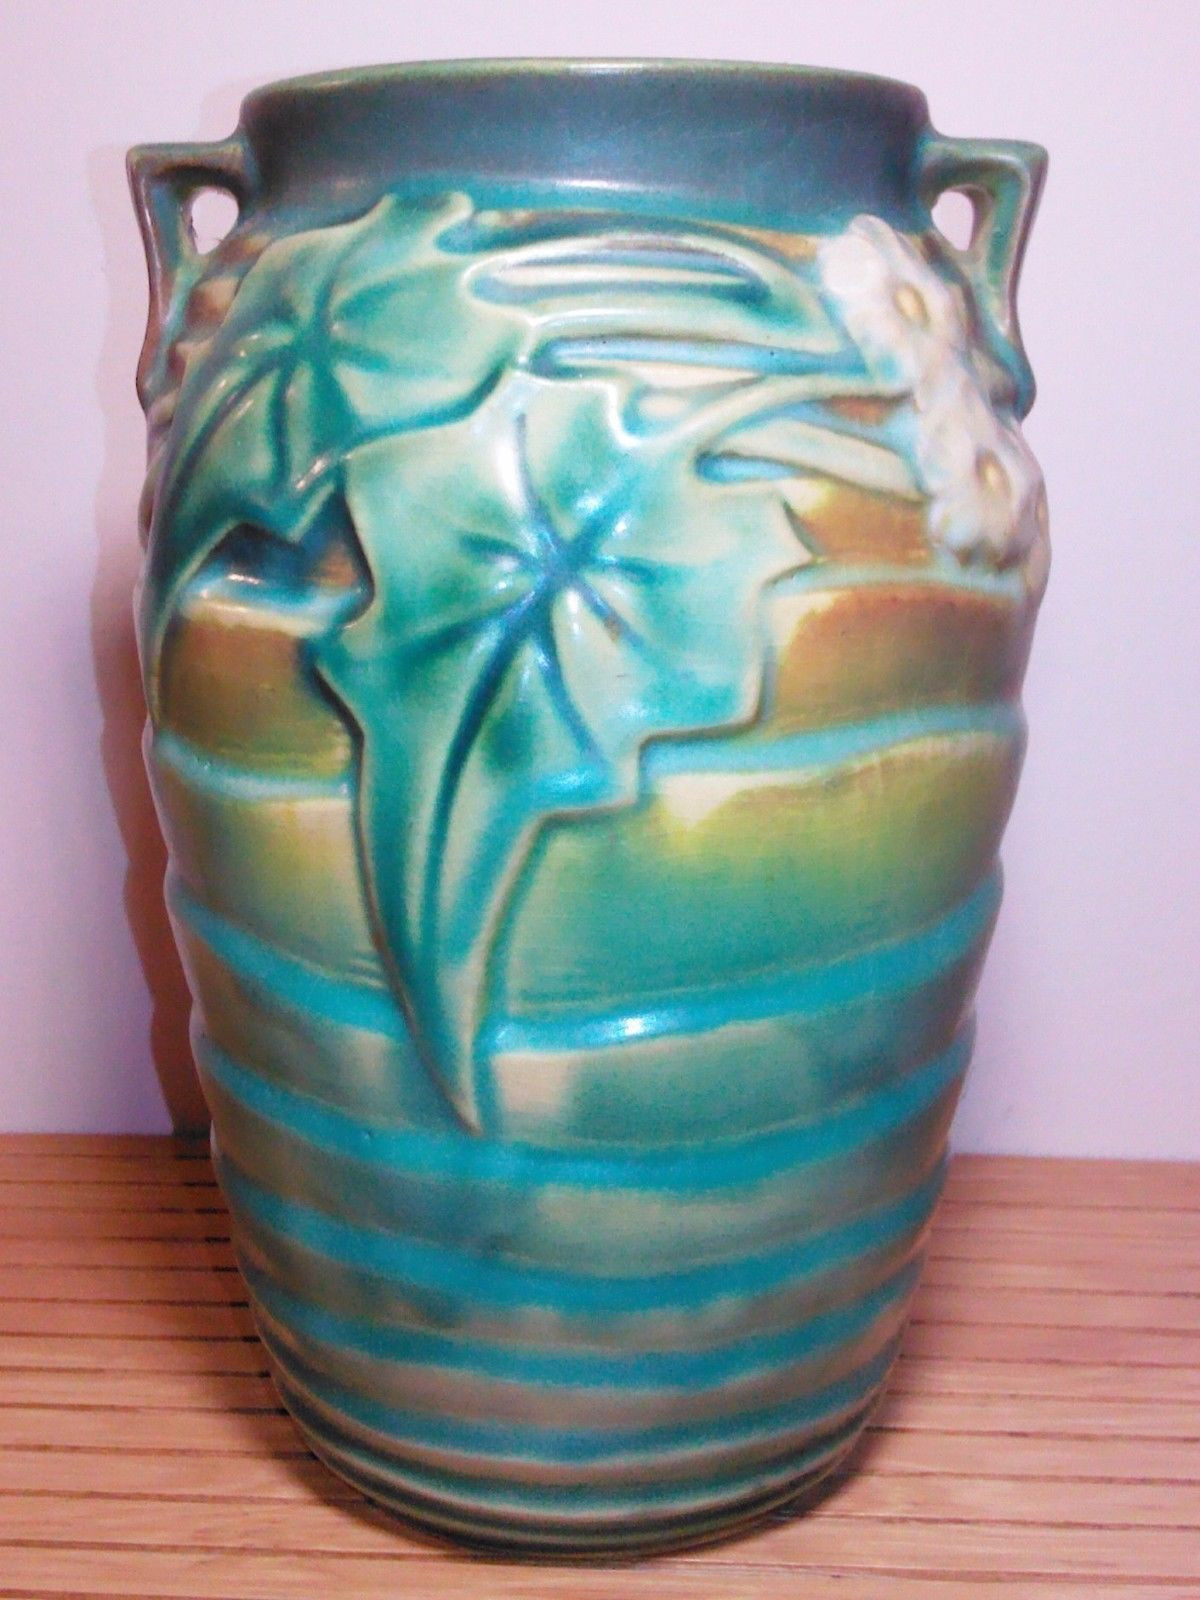 sunflower ceramic vase of roseville luffa green vase 685 7 with foil label excellent ebay with roseville luffa green vase 685 7 with foil label excellent